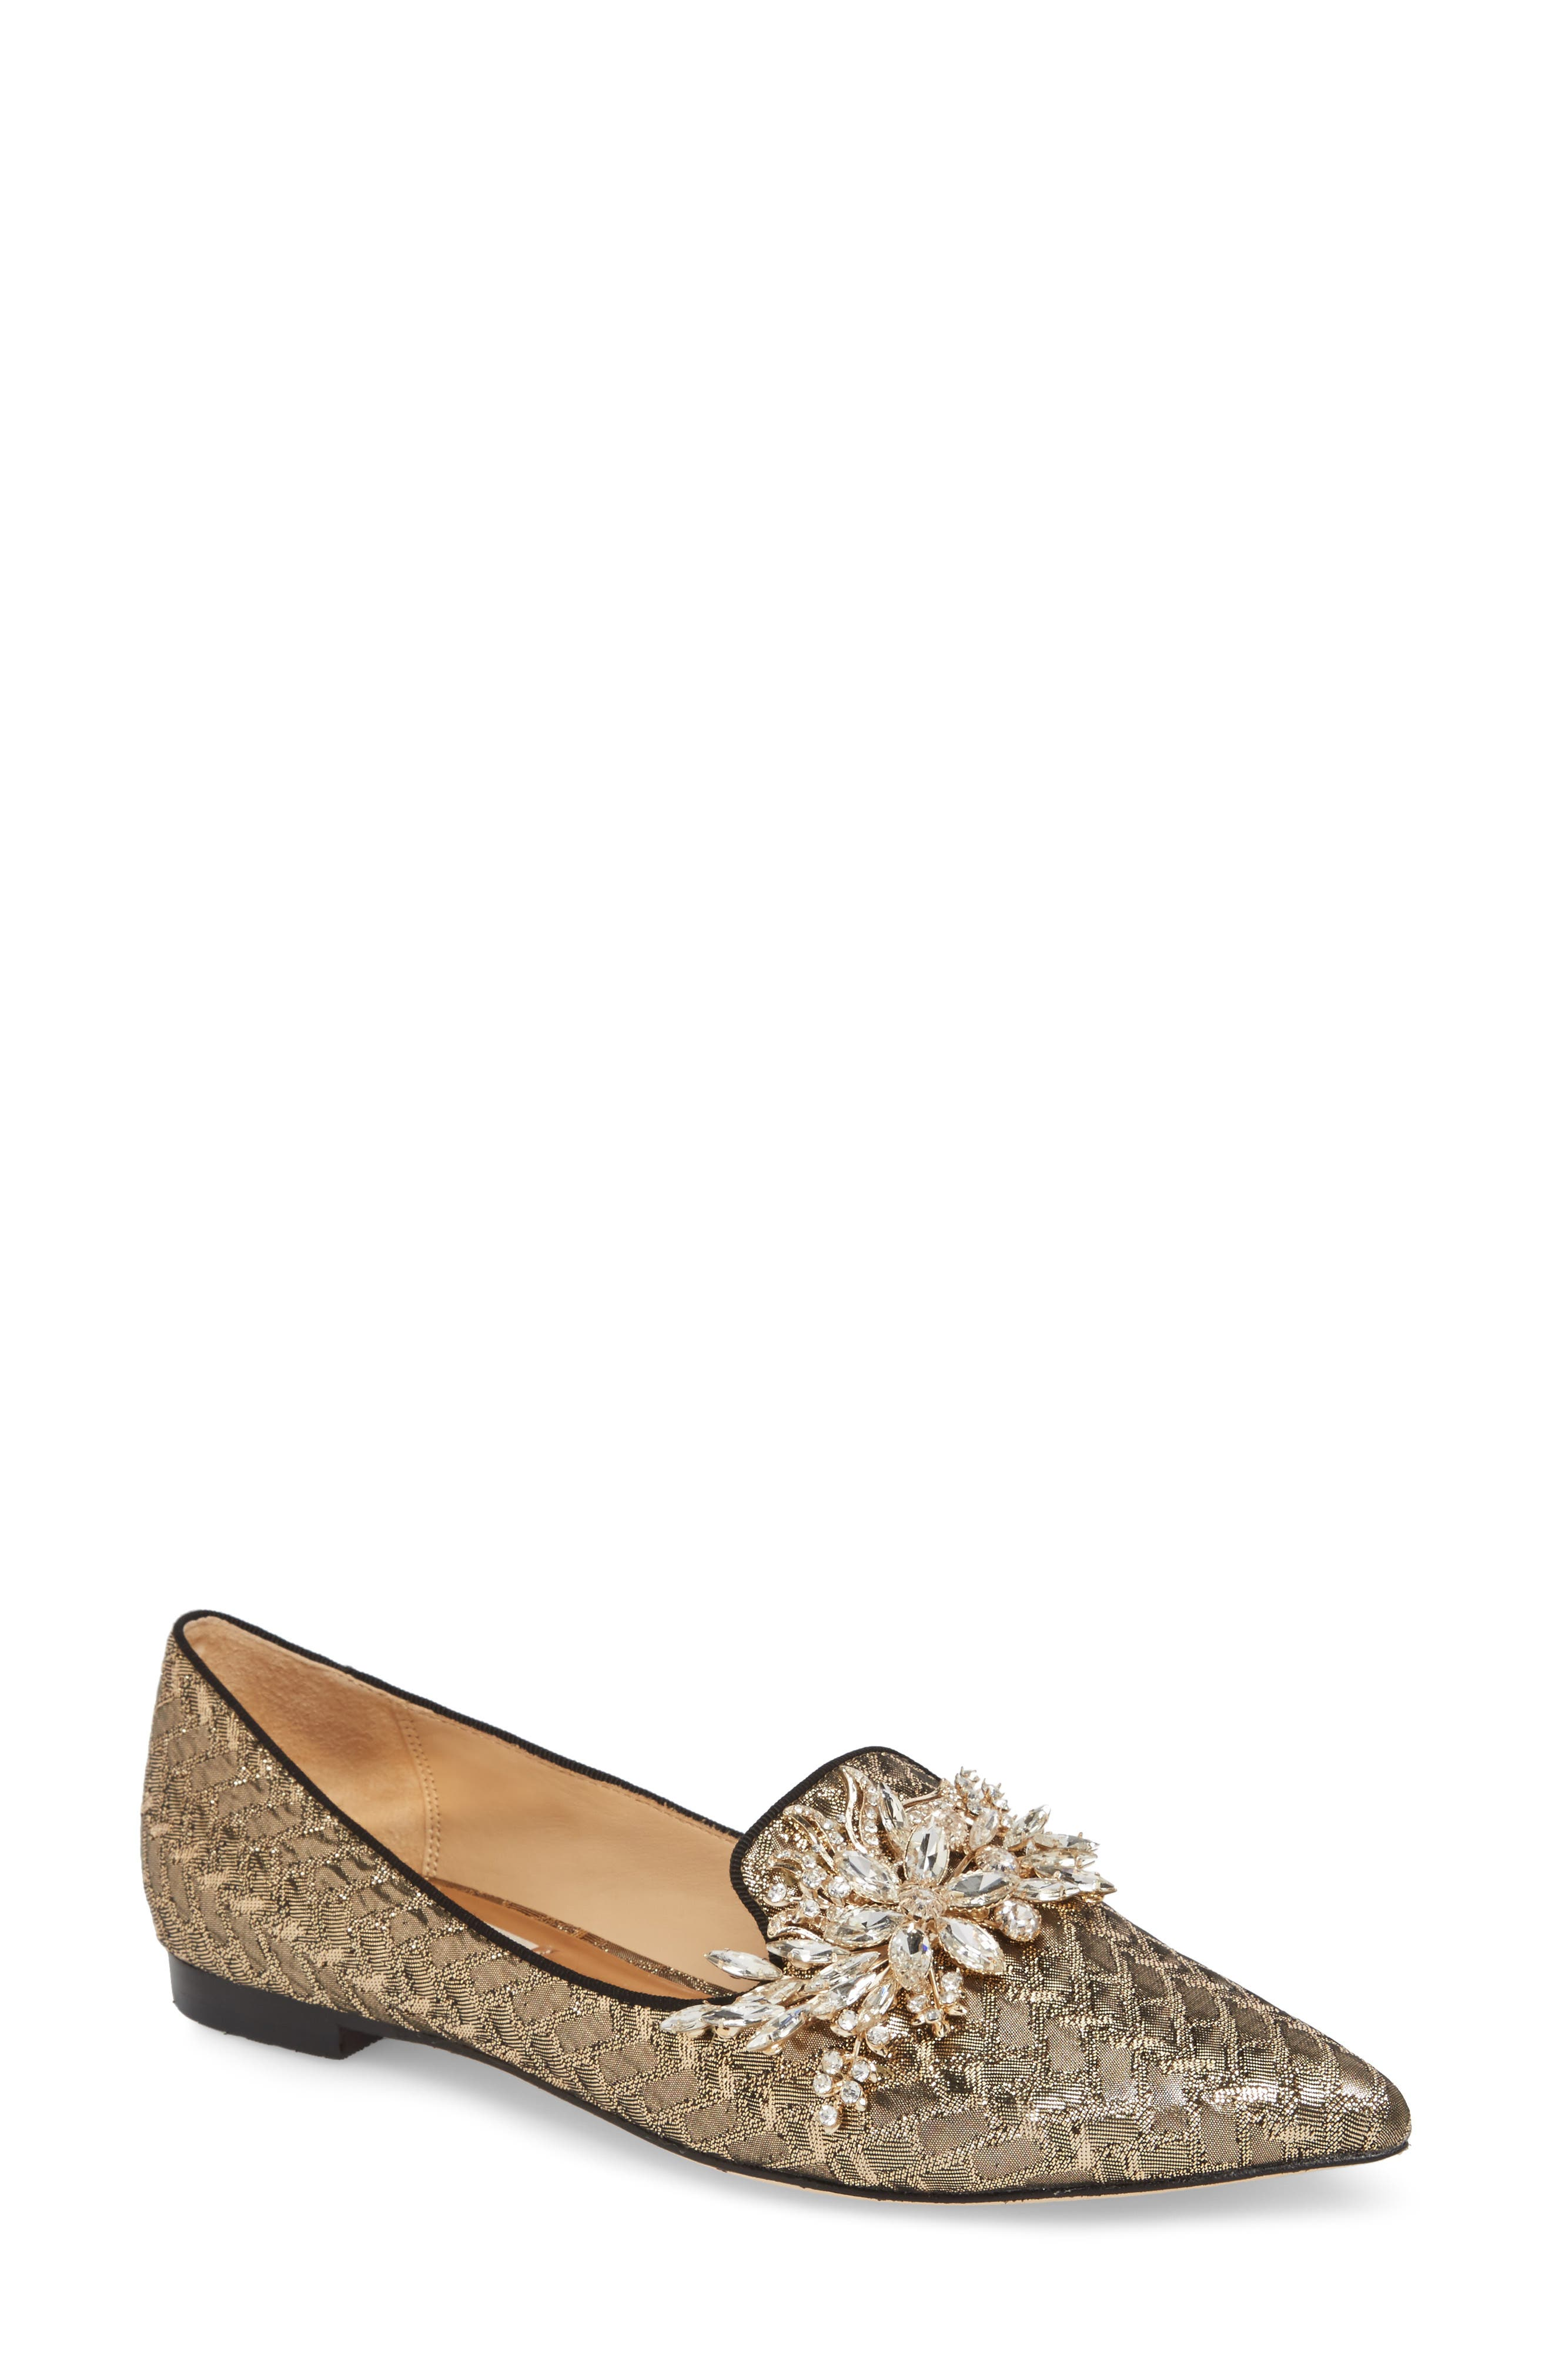 Mandy Embellished Loafer Flat,                         Main,                         color, Antique Gold